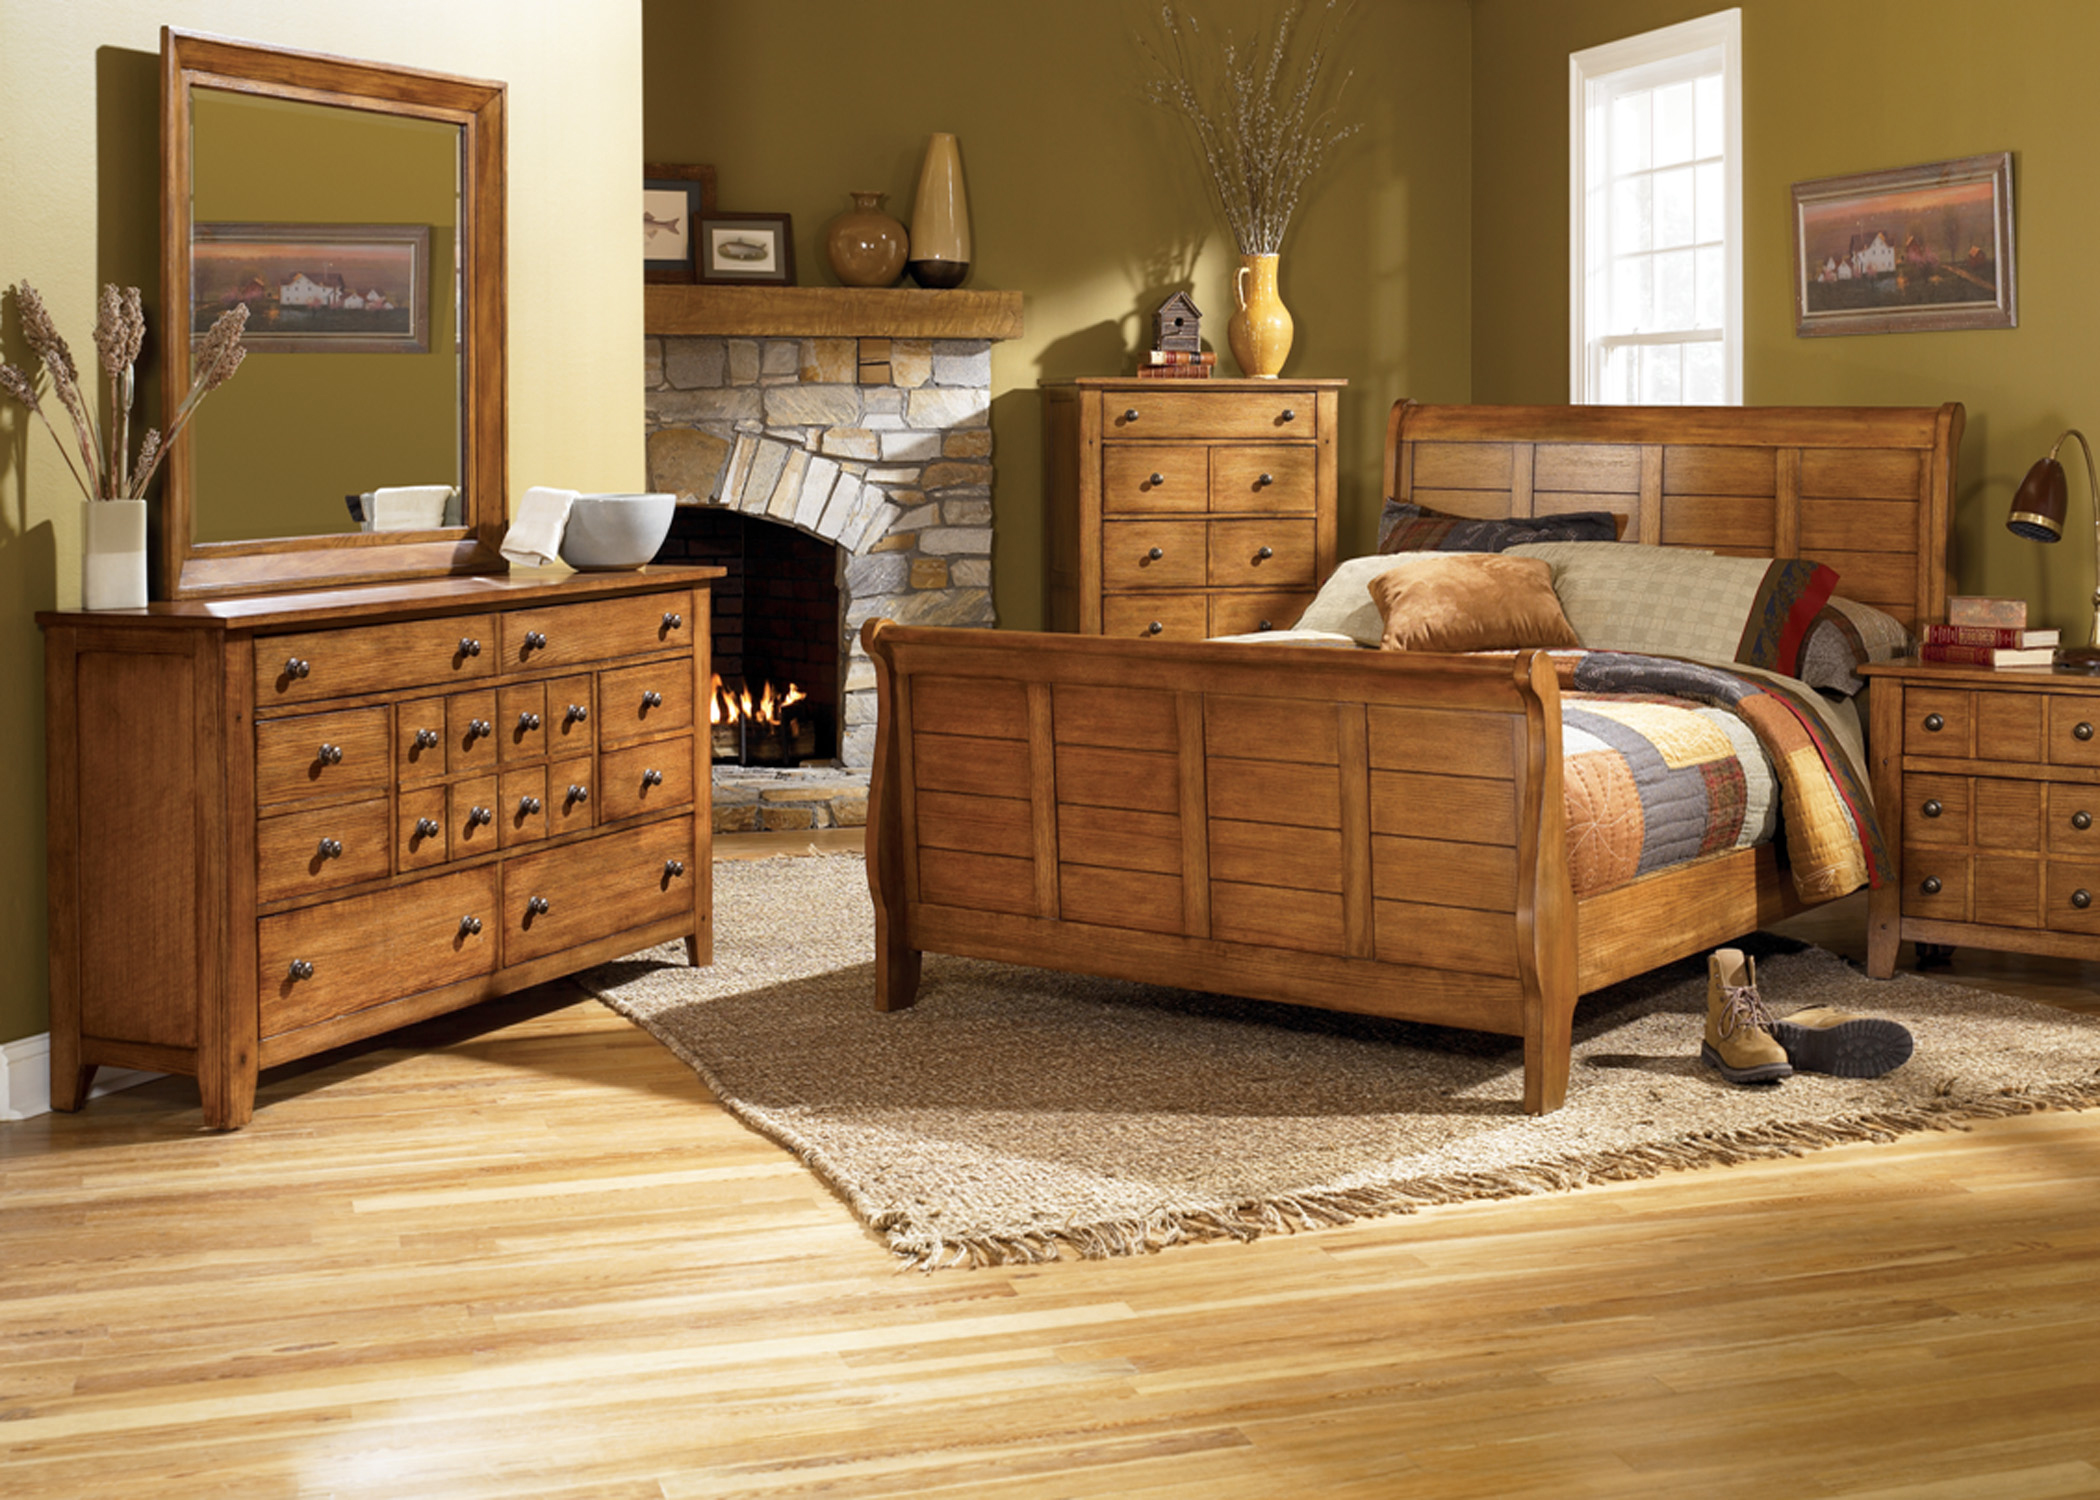 Ohio Bedroom Furniture Love Furniture Located In Tallmadge Ohio Offers Huge Selections